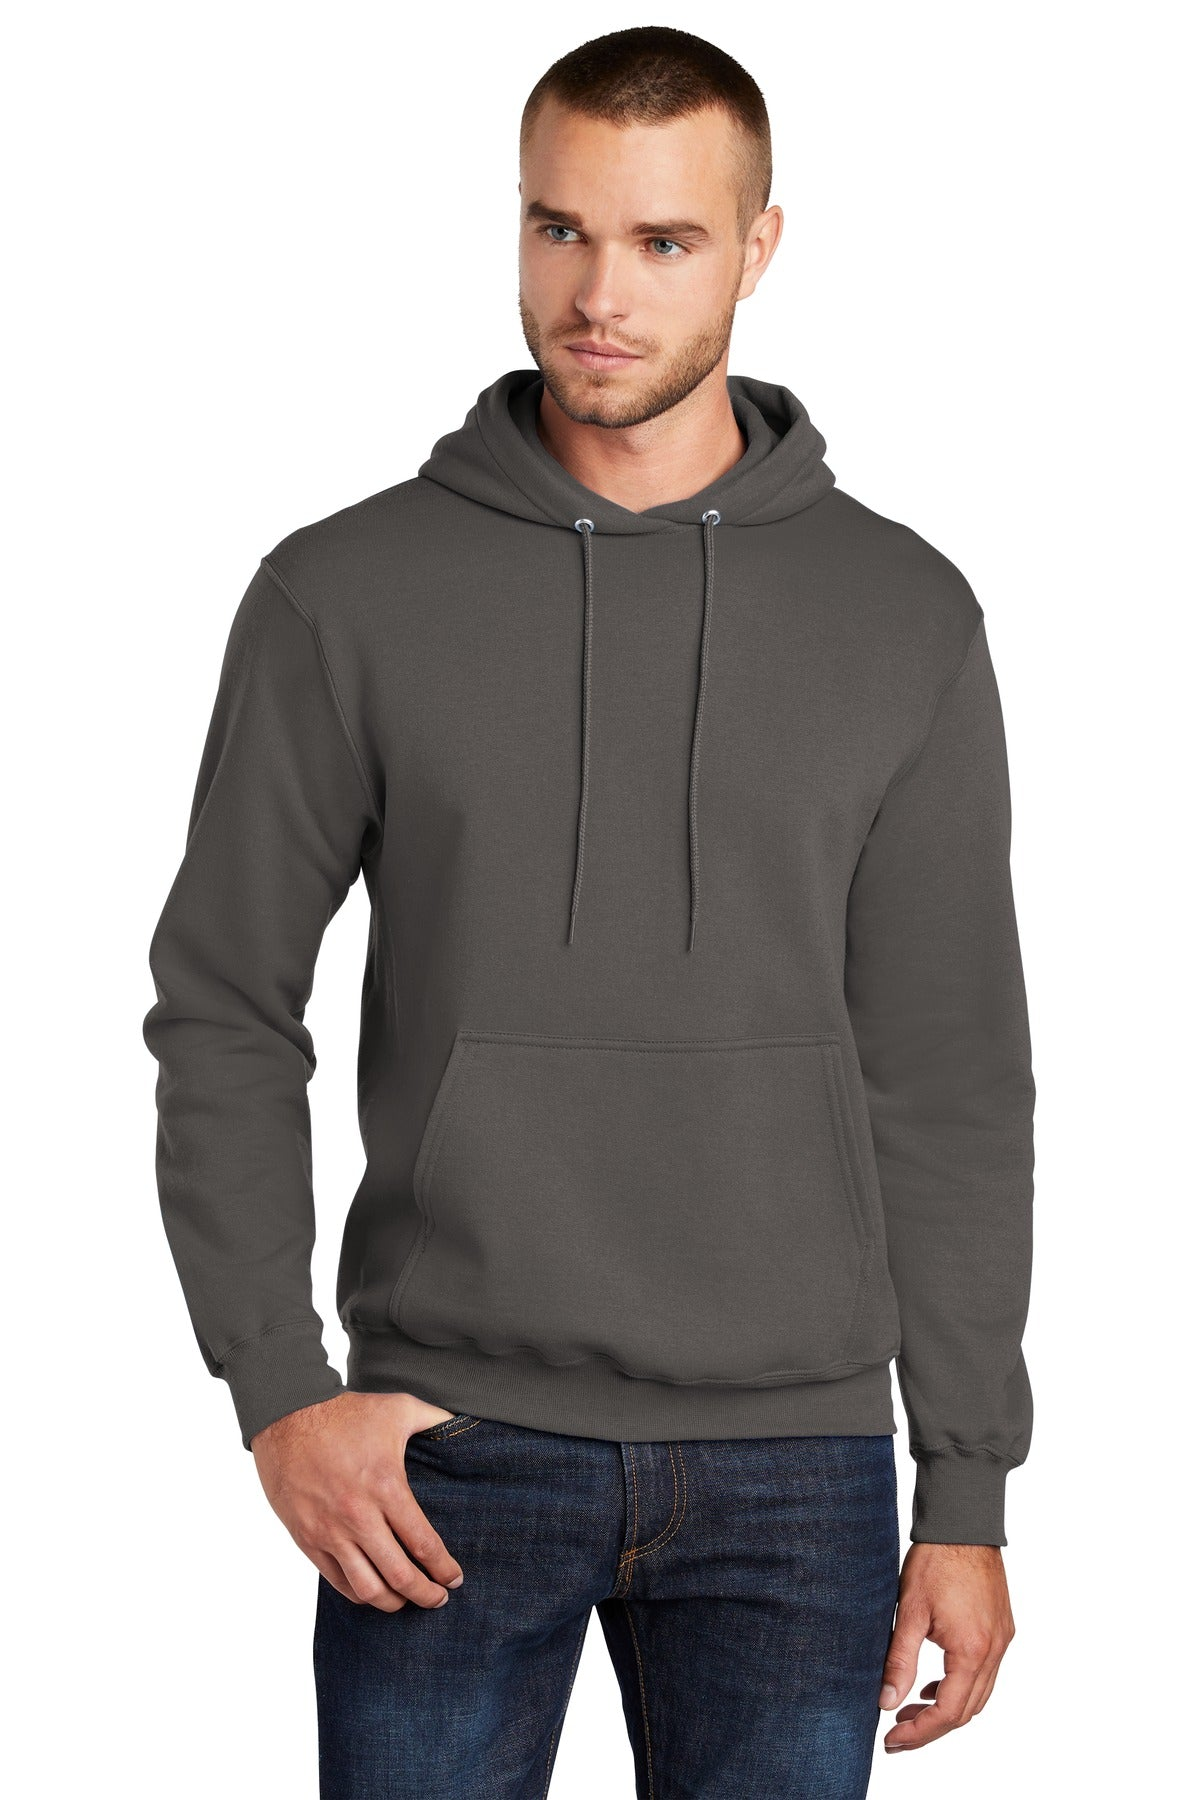 Port & Company PC78HT Tall Core Fleece Pullover Hooded Sweatshirt - Charcoal - HIT A Double